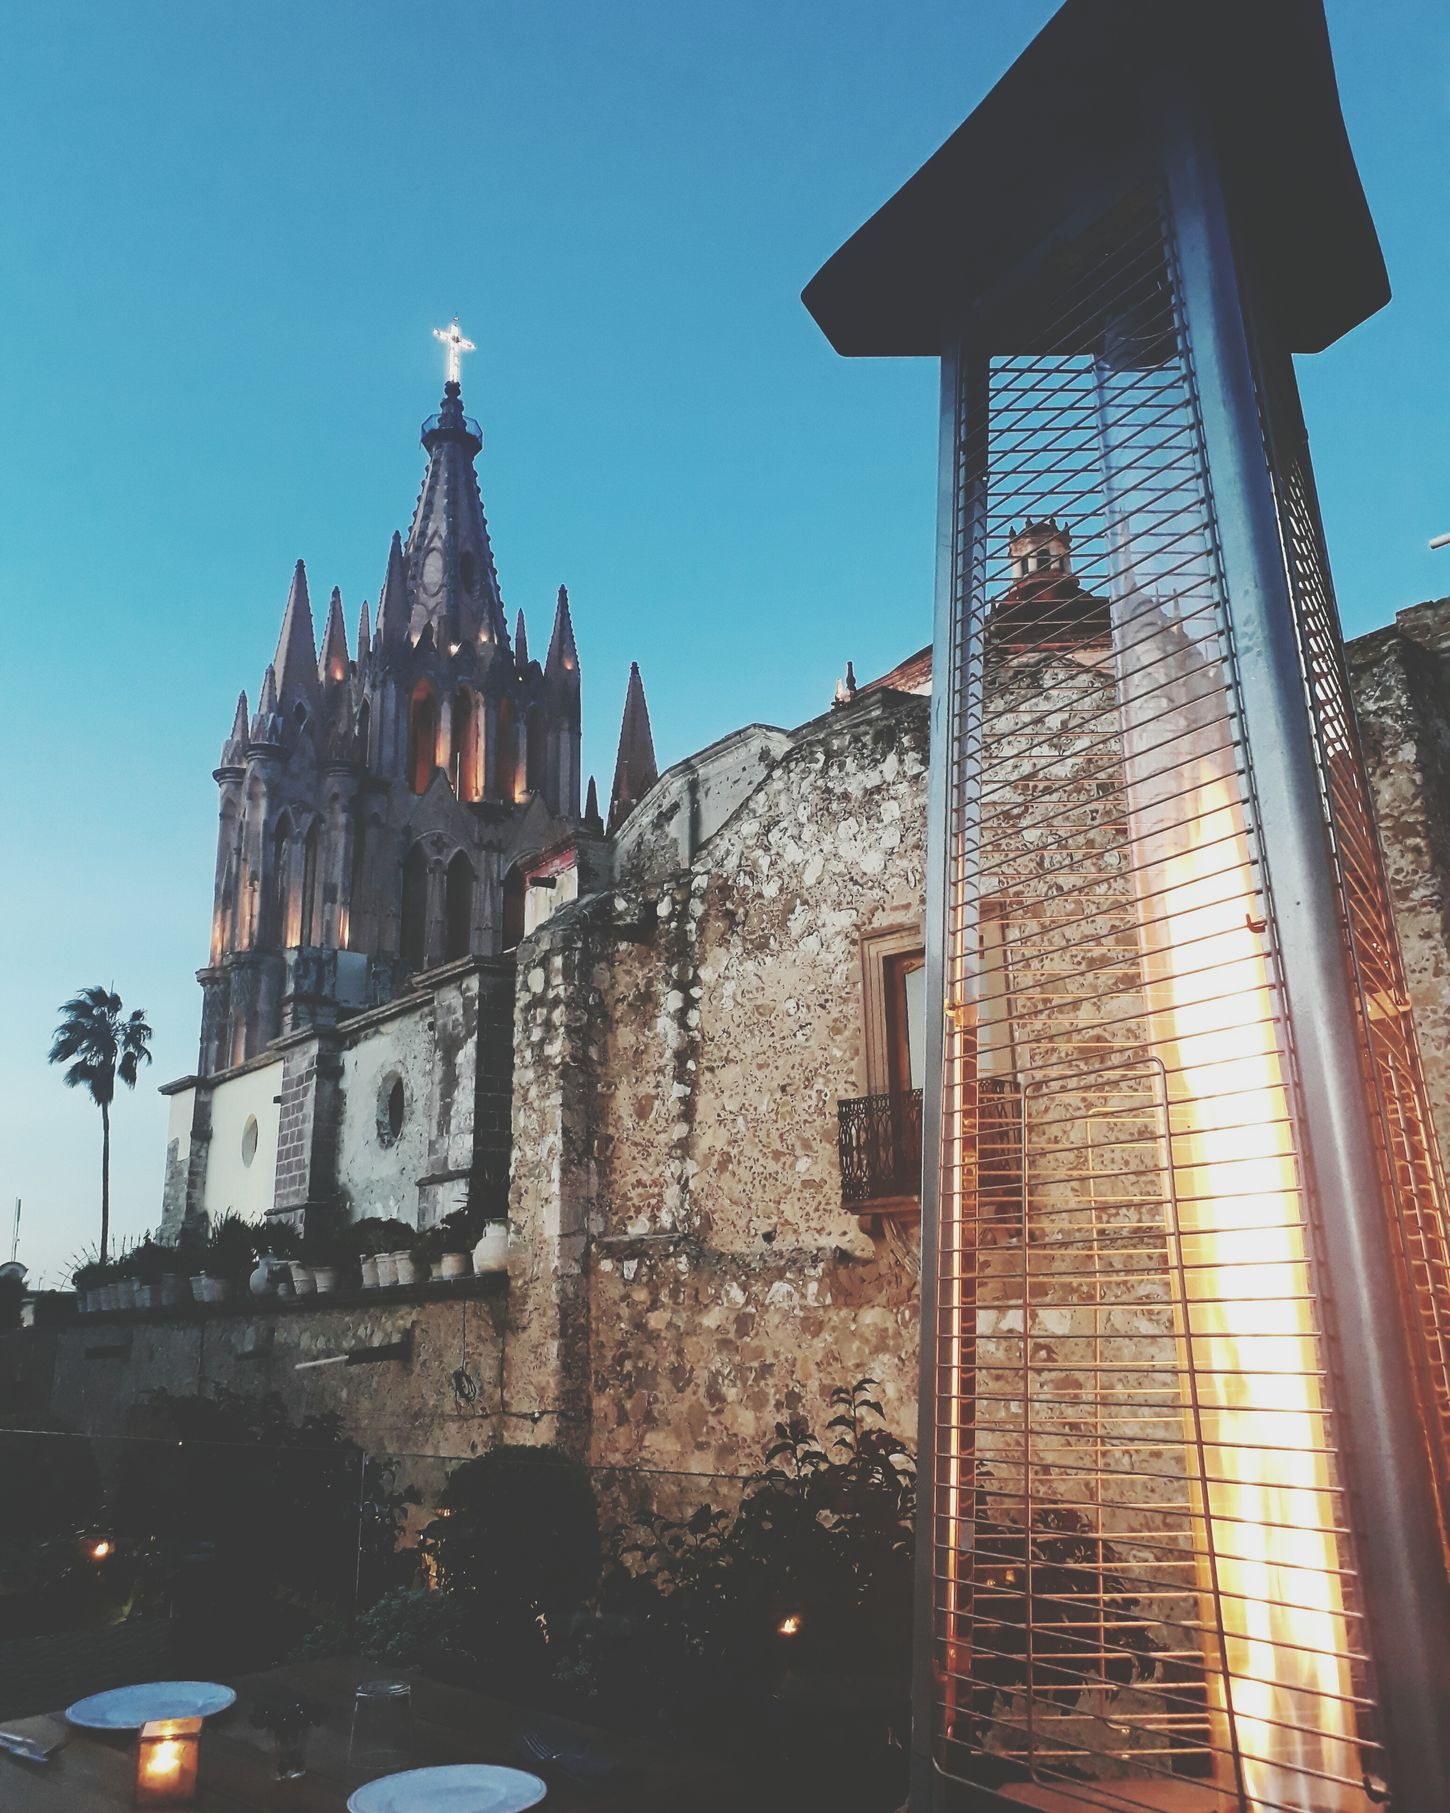 Architecture No People City Sky Day Photography Mexico Tranquility Atardecer Travel Photography Lifestyles Rooftop Quincerooftop Terraza Parroquia Church Piedra